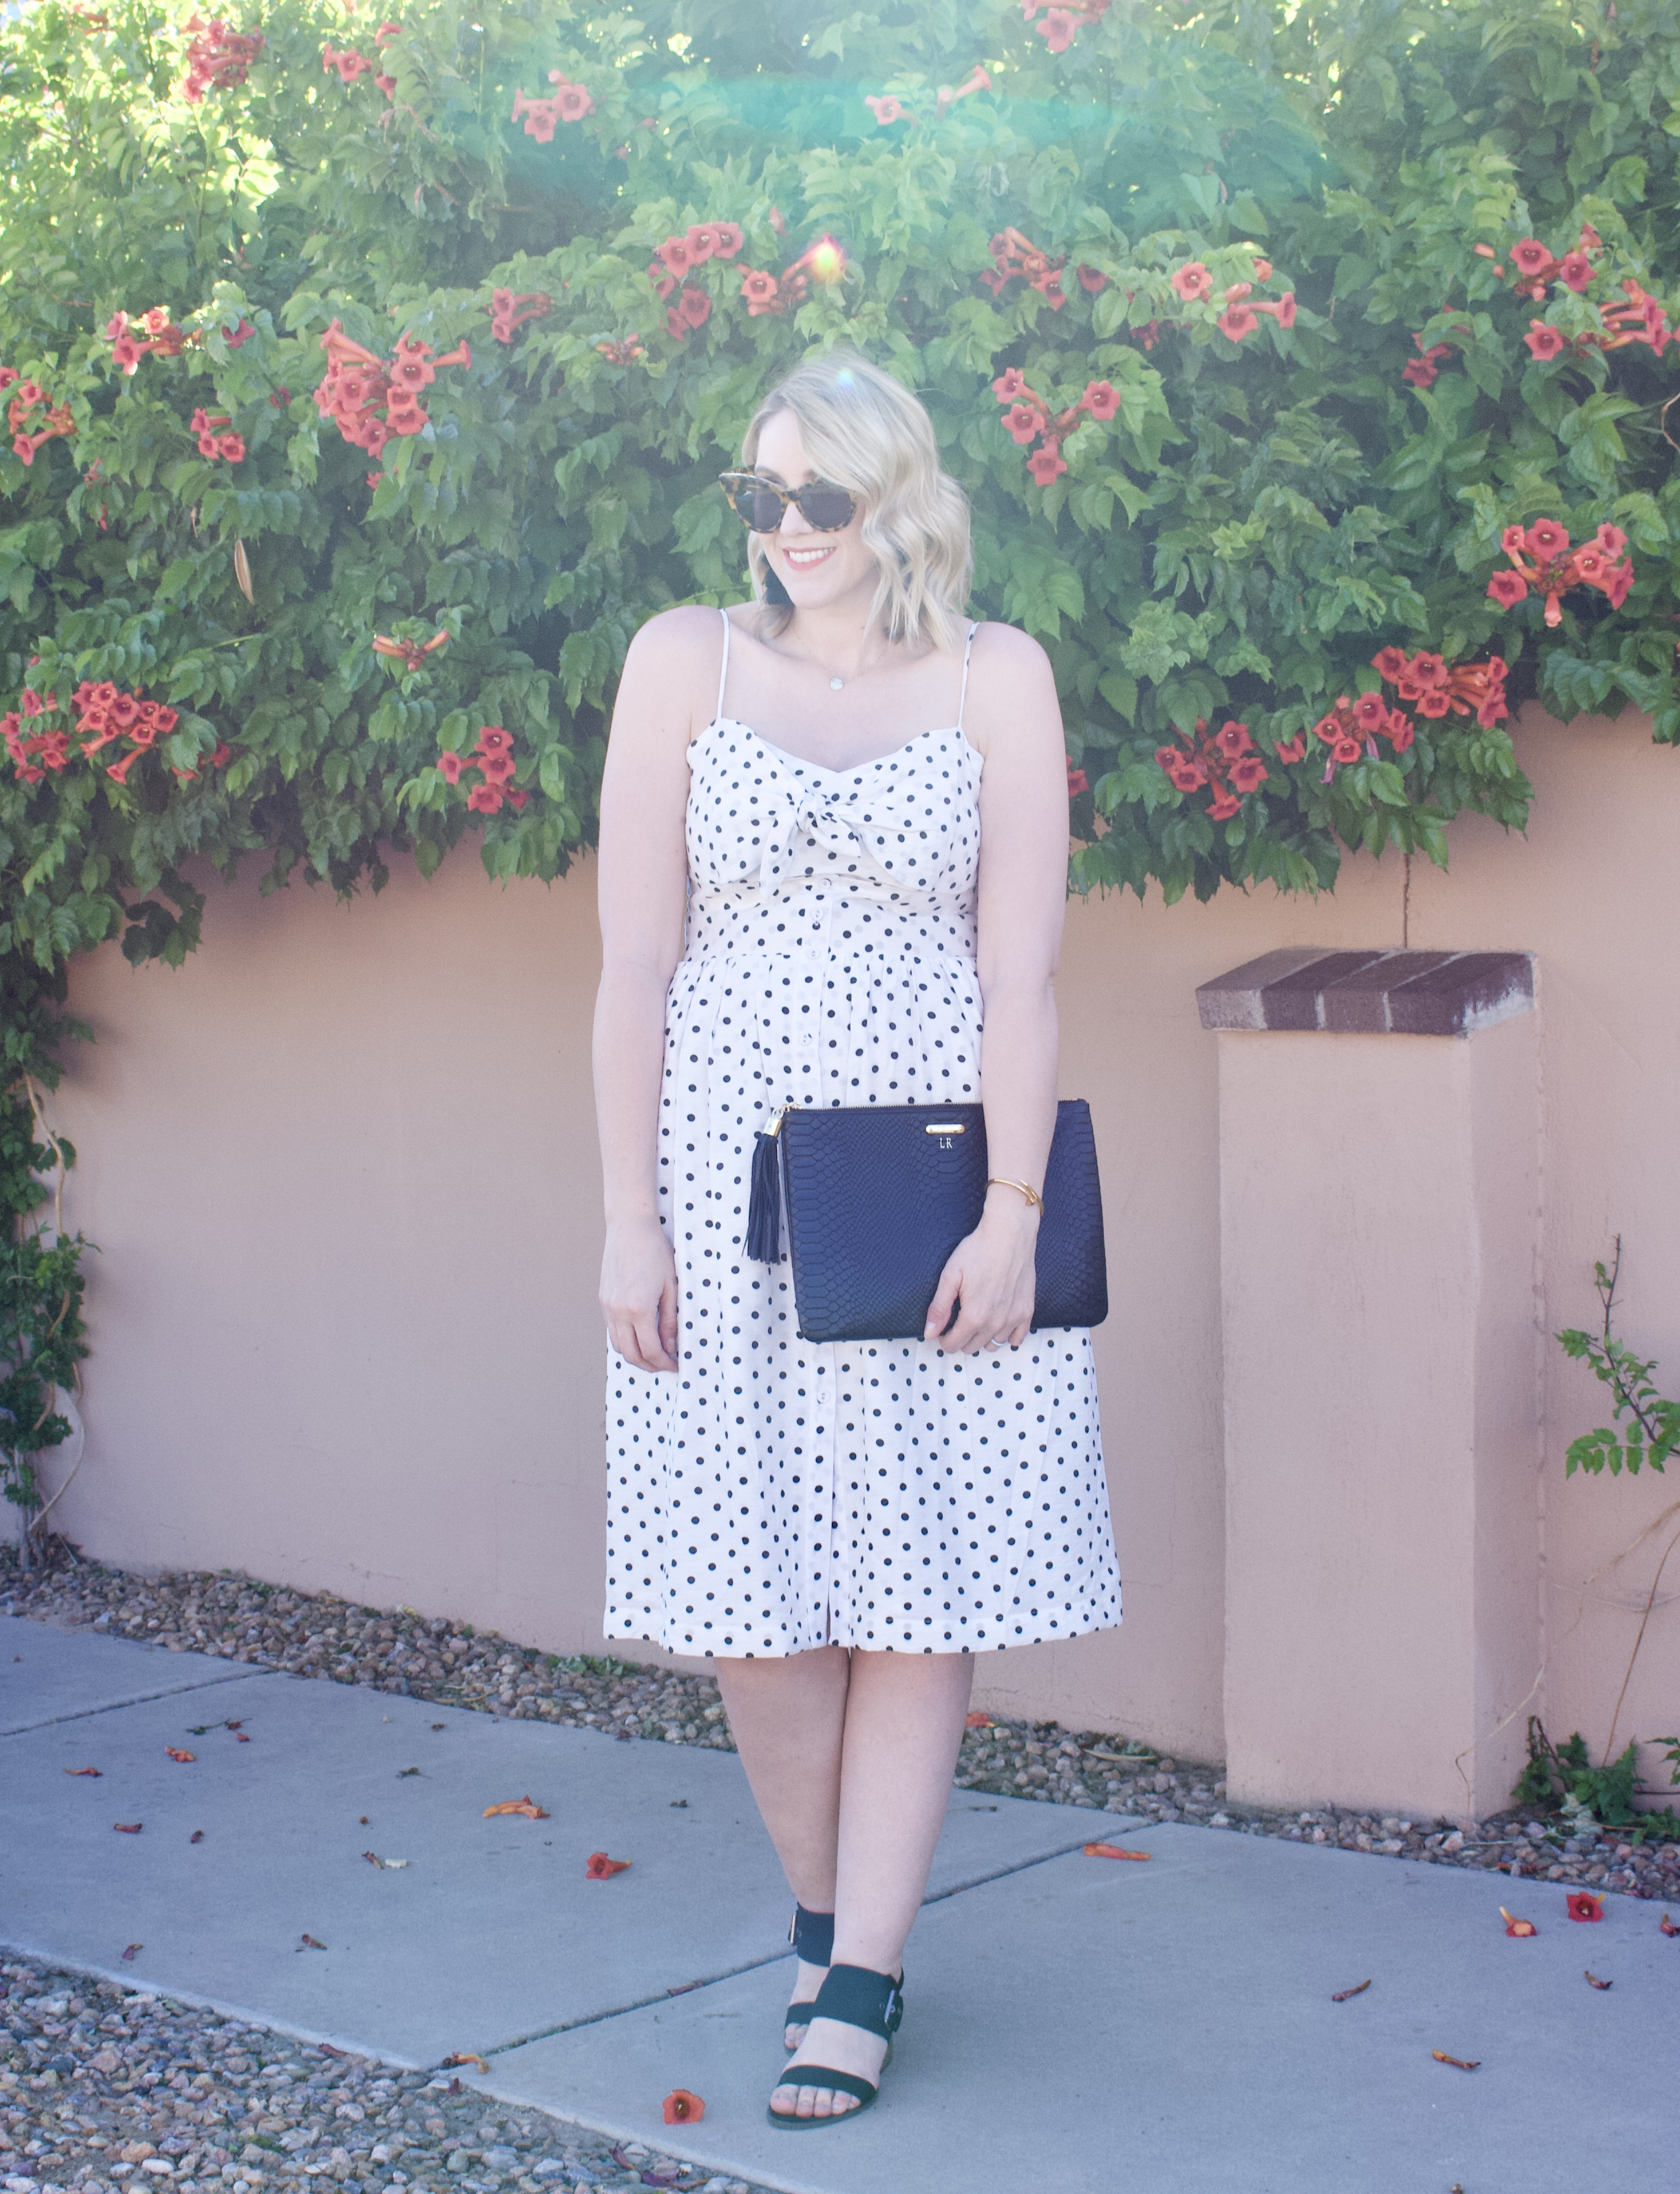 polka dot midi dress target #polkadots #summerstyle #mididress